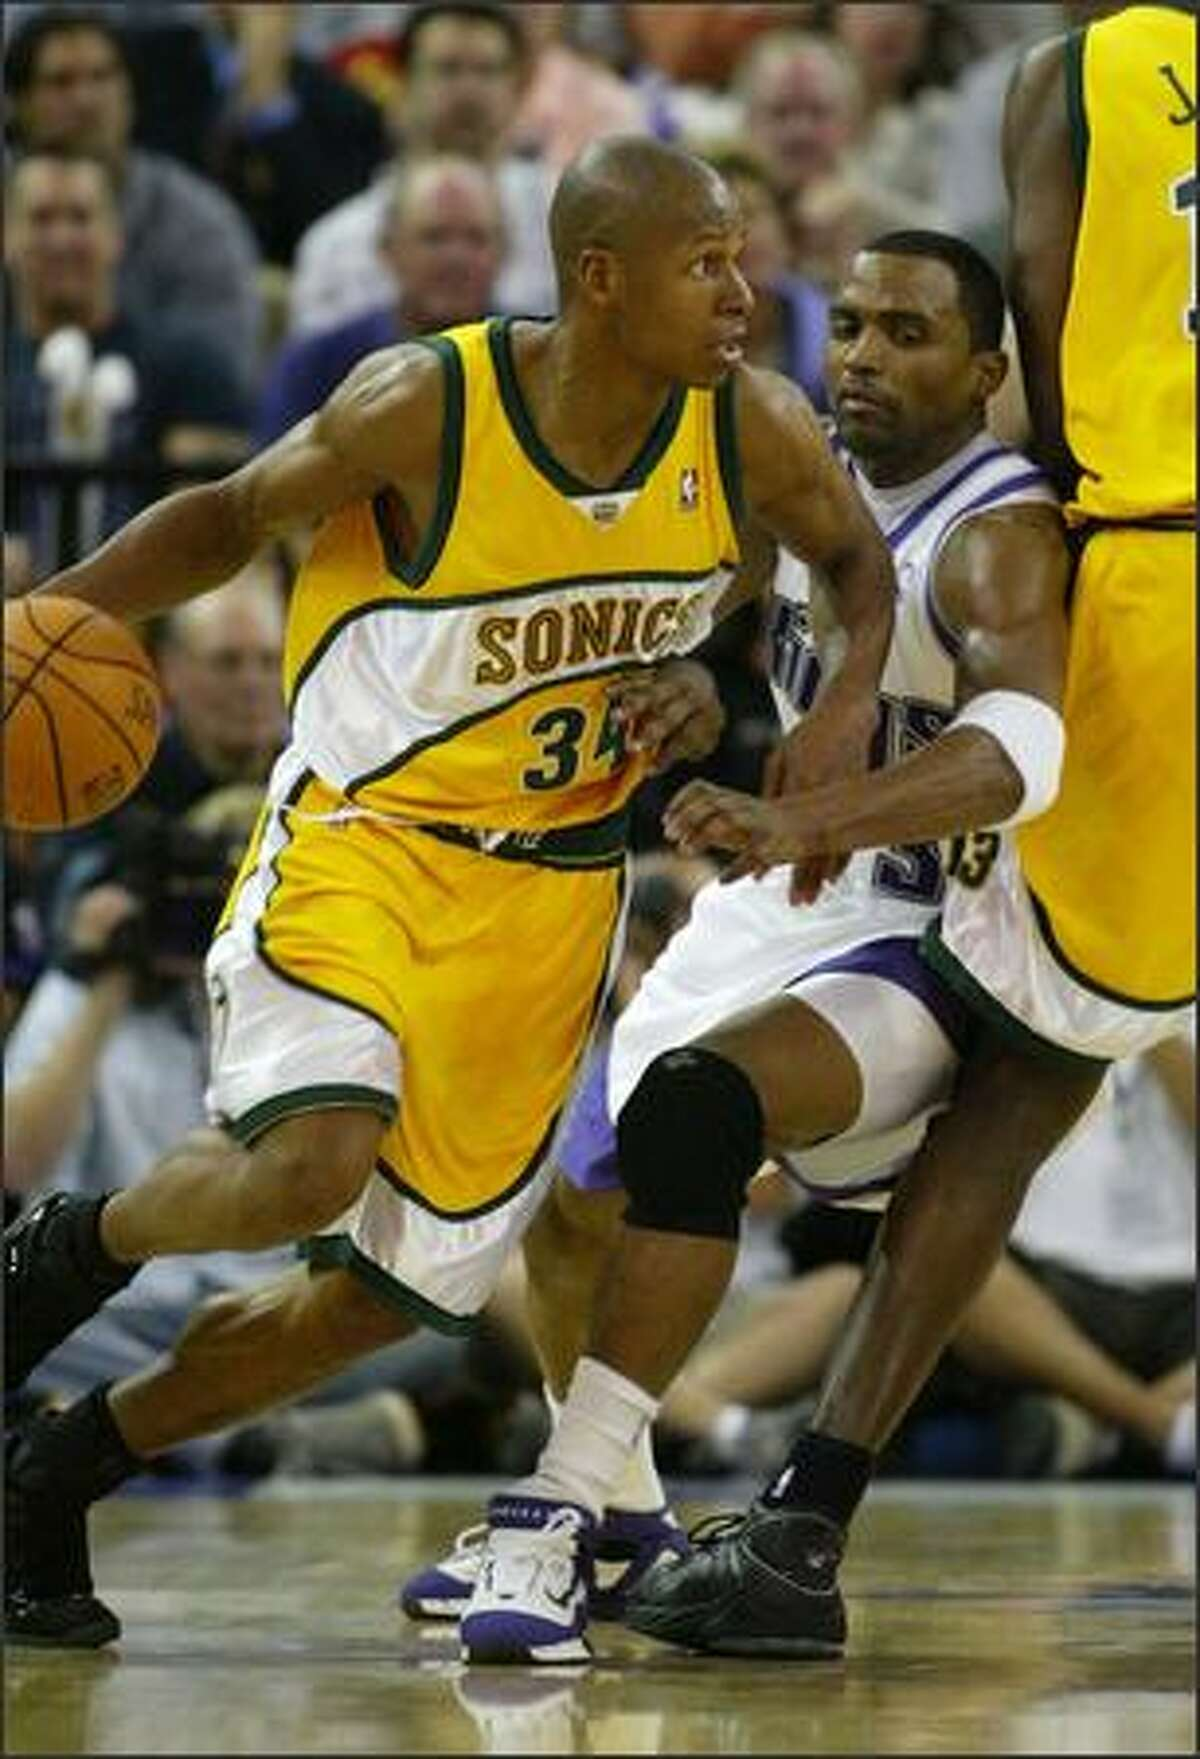 Ray Allen drives around Sacramento's Cuttino Mobley.